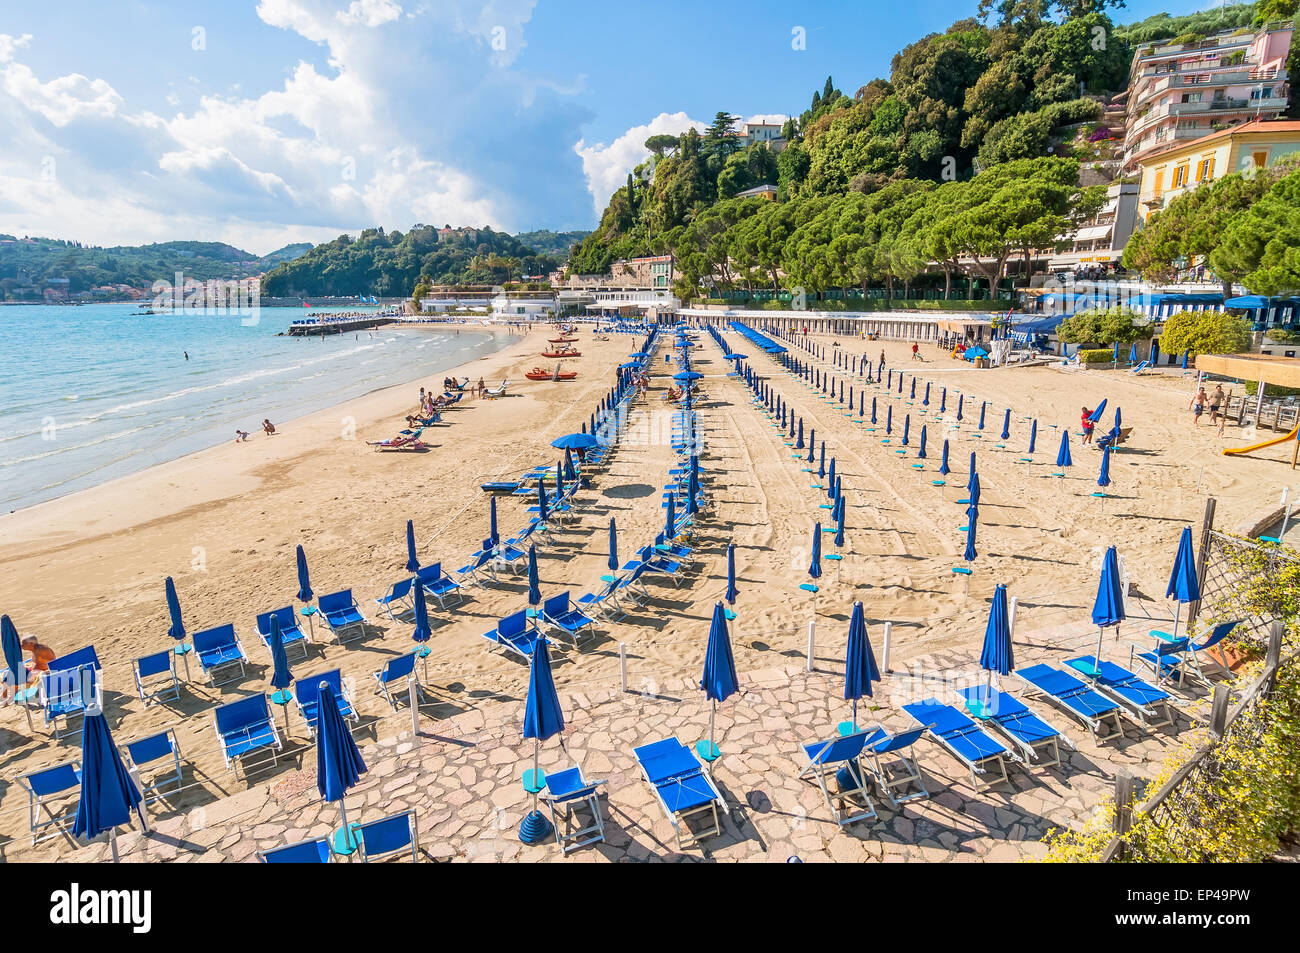 LERICI, ITALY - MAY 31, 2014: beach and town of Lerici, Italy. Lerici is located in La Spezia Gulf of Poets, Liguria, - Stock Image